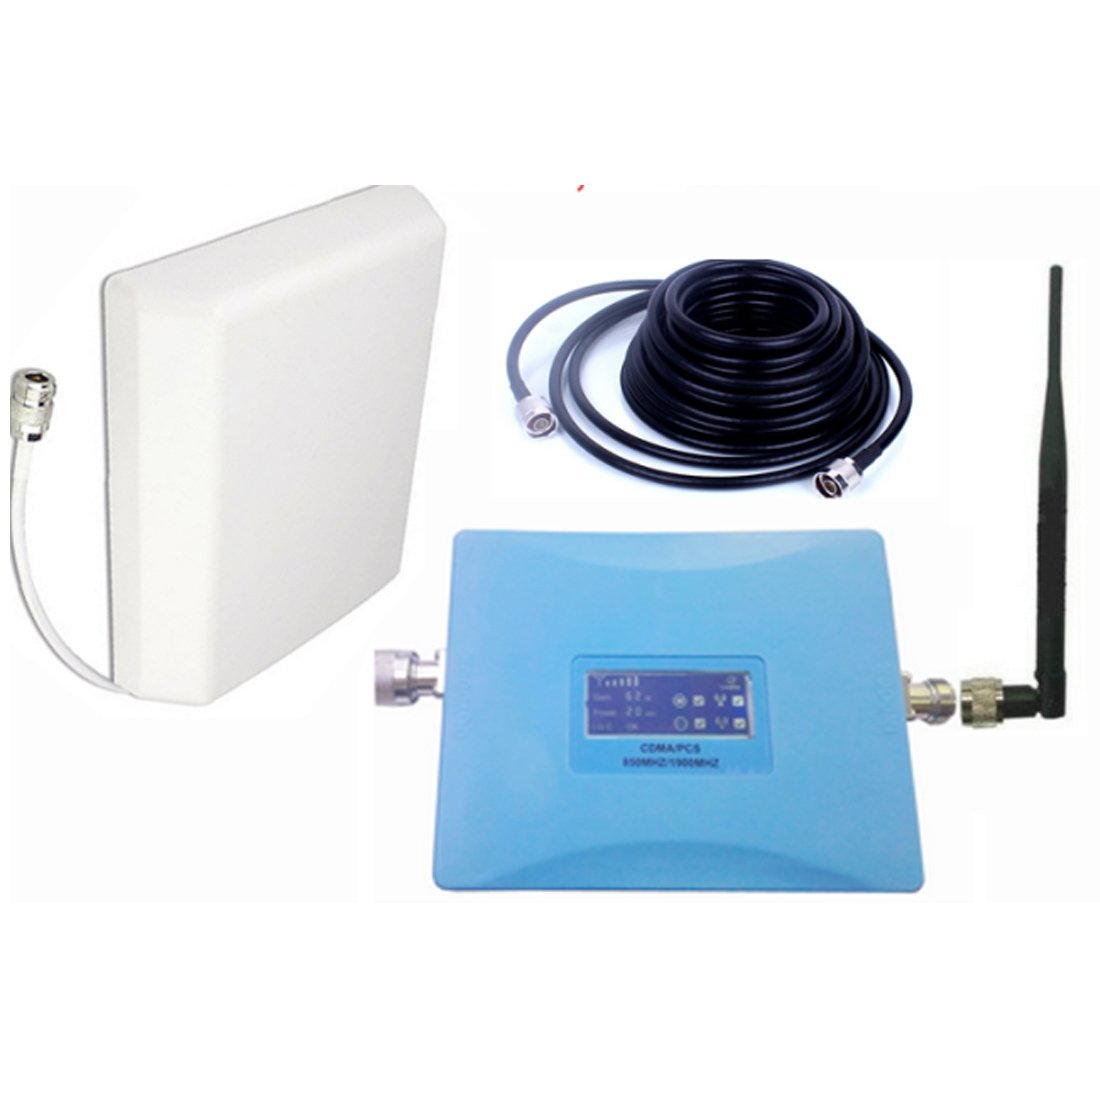 for USA 4G Signal Booster Data and Voice Repeater 850mhz CDMA Repeater PCS 1900Mhz Booster Lte Fdd Amplifier for AT&T Sprint Verizon T mobile longshen blue 850 1900